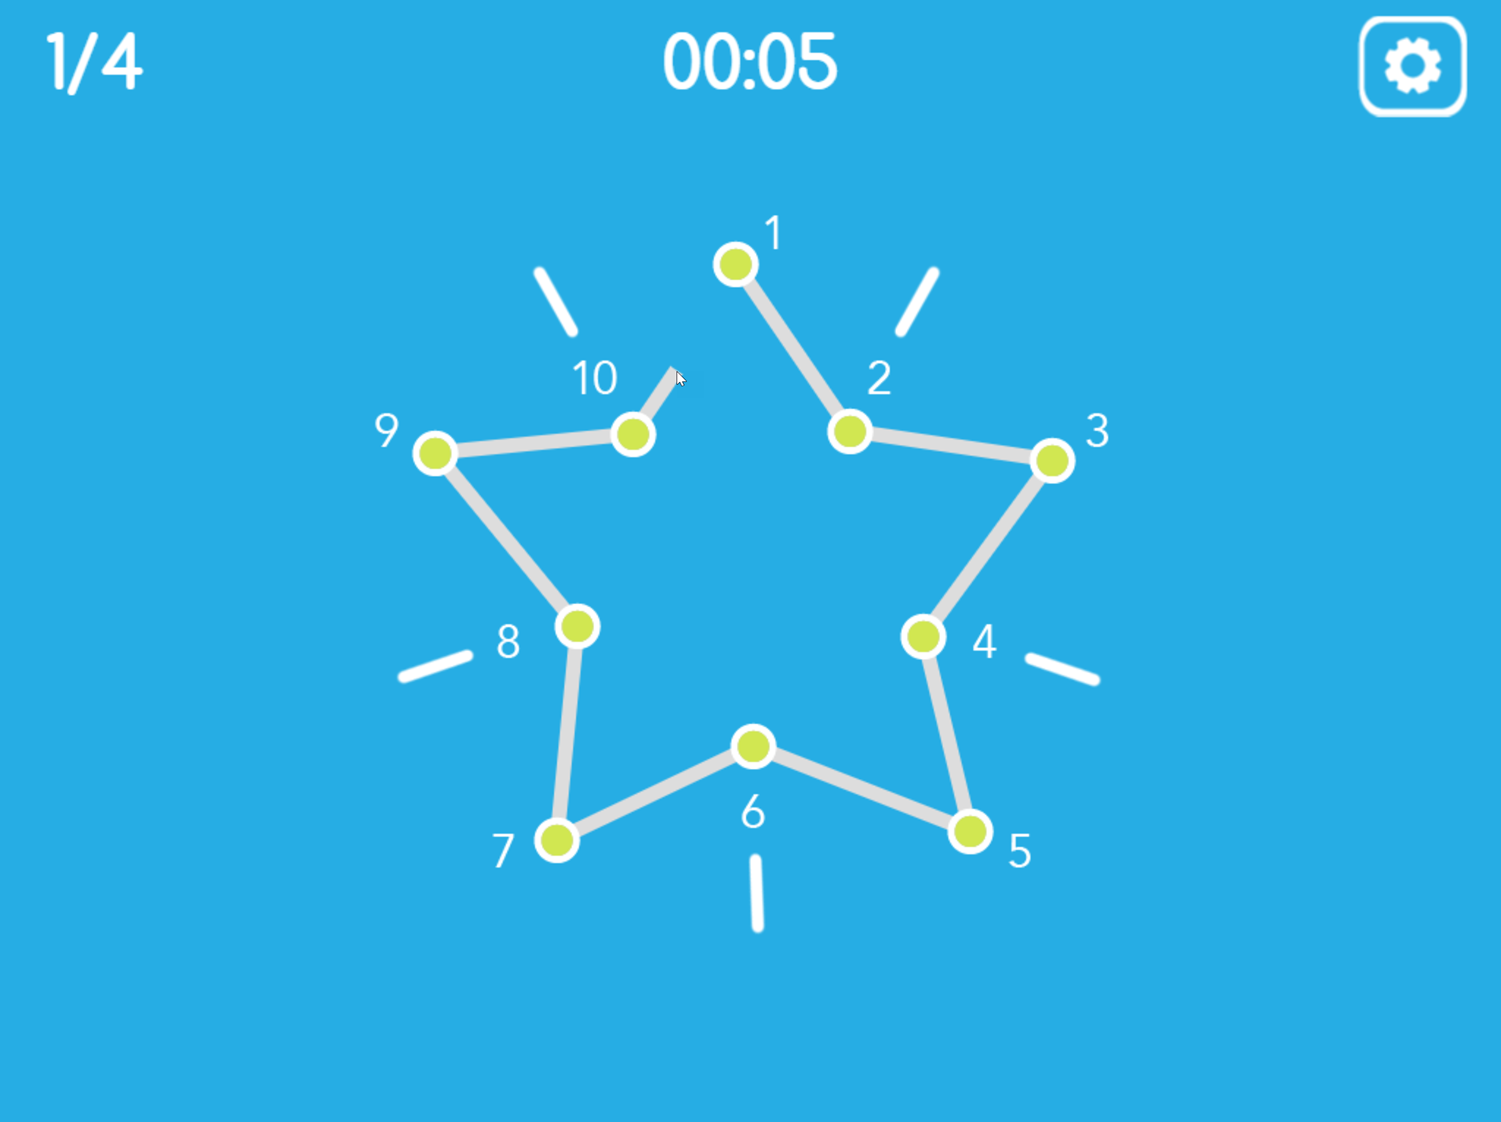 Connect the Dots Game Drawn Screenshot.